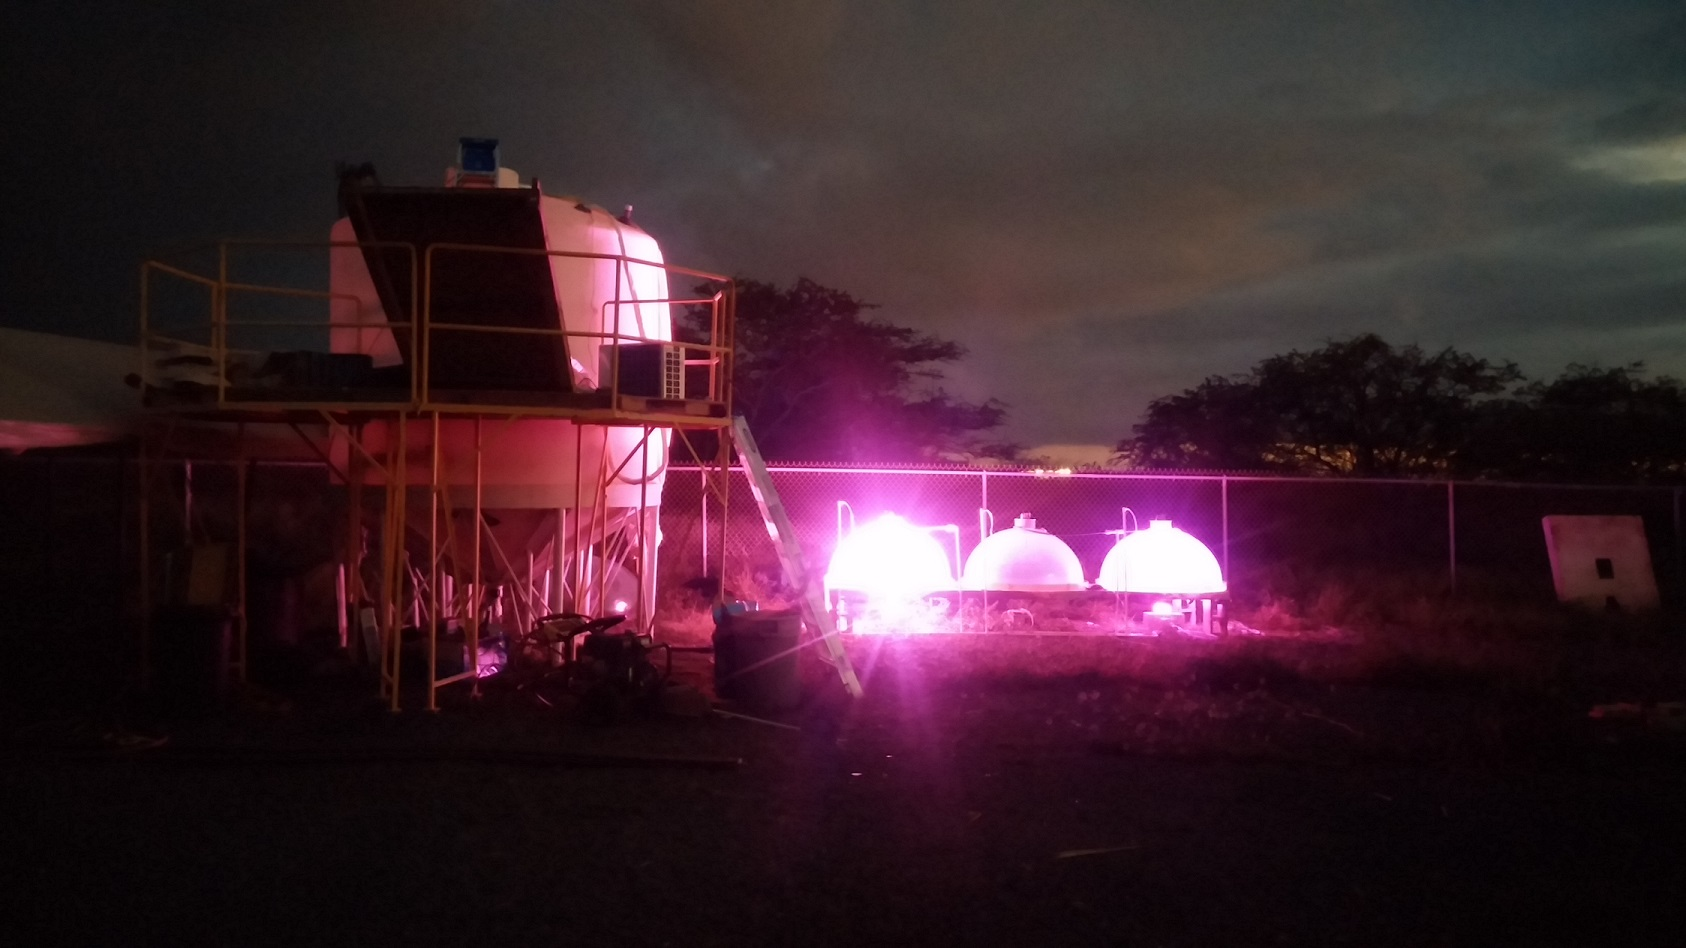 Hackerspace Earthship (HAESH): Homemade Environmental Control Life Support System (E.C.L.S.S.)